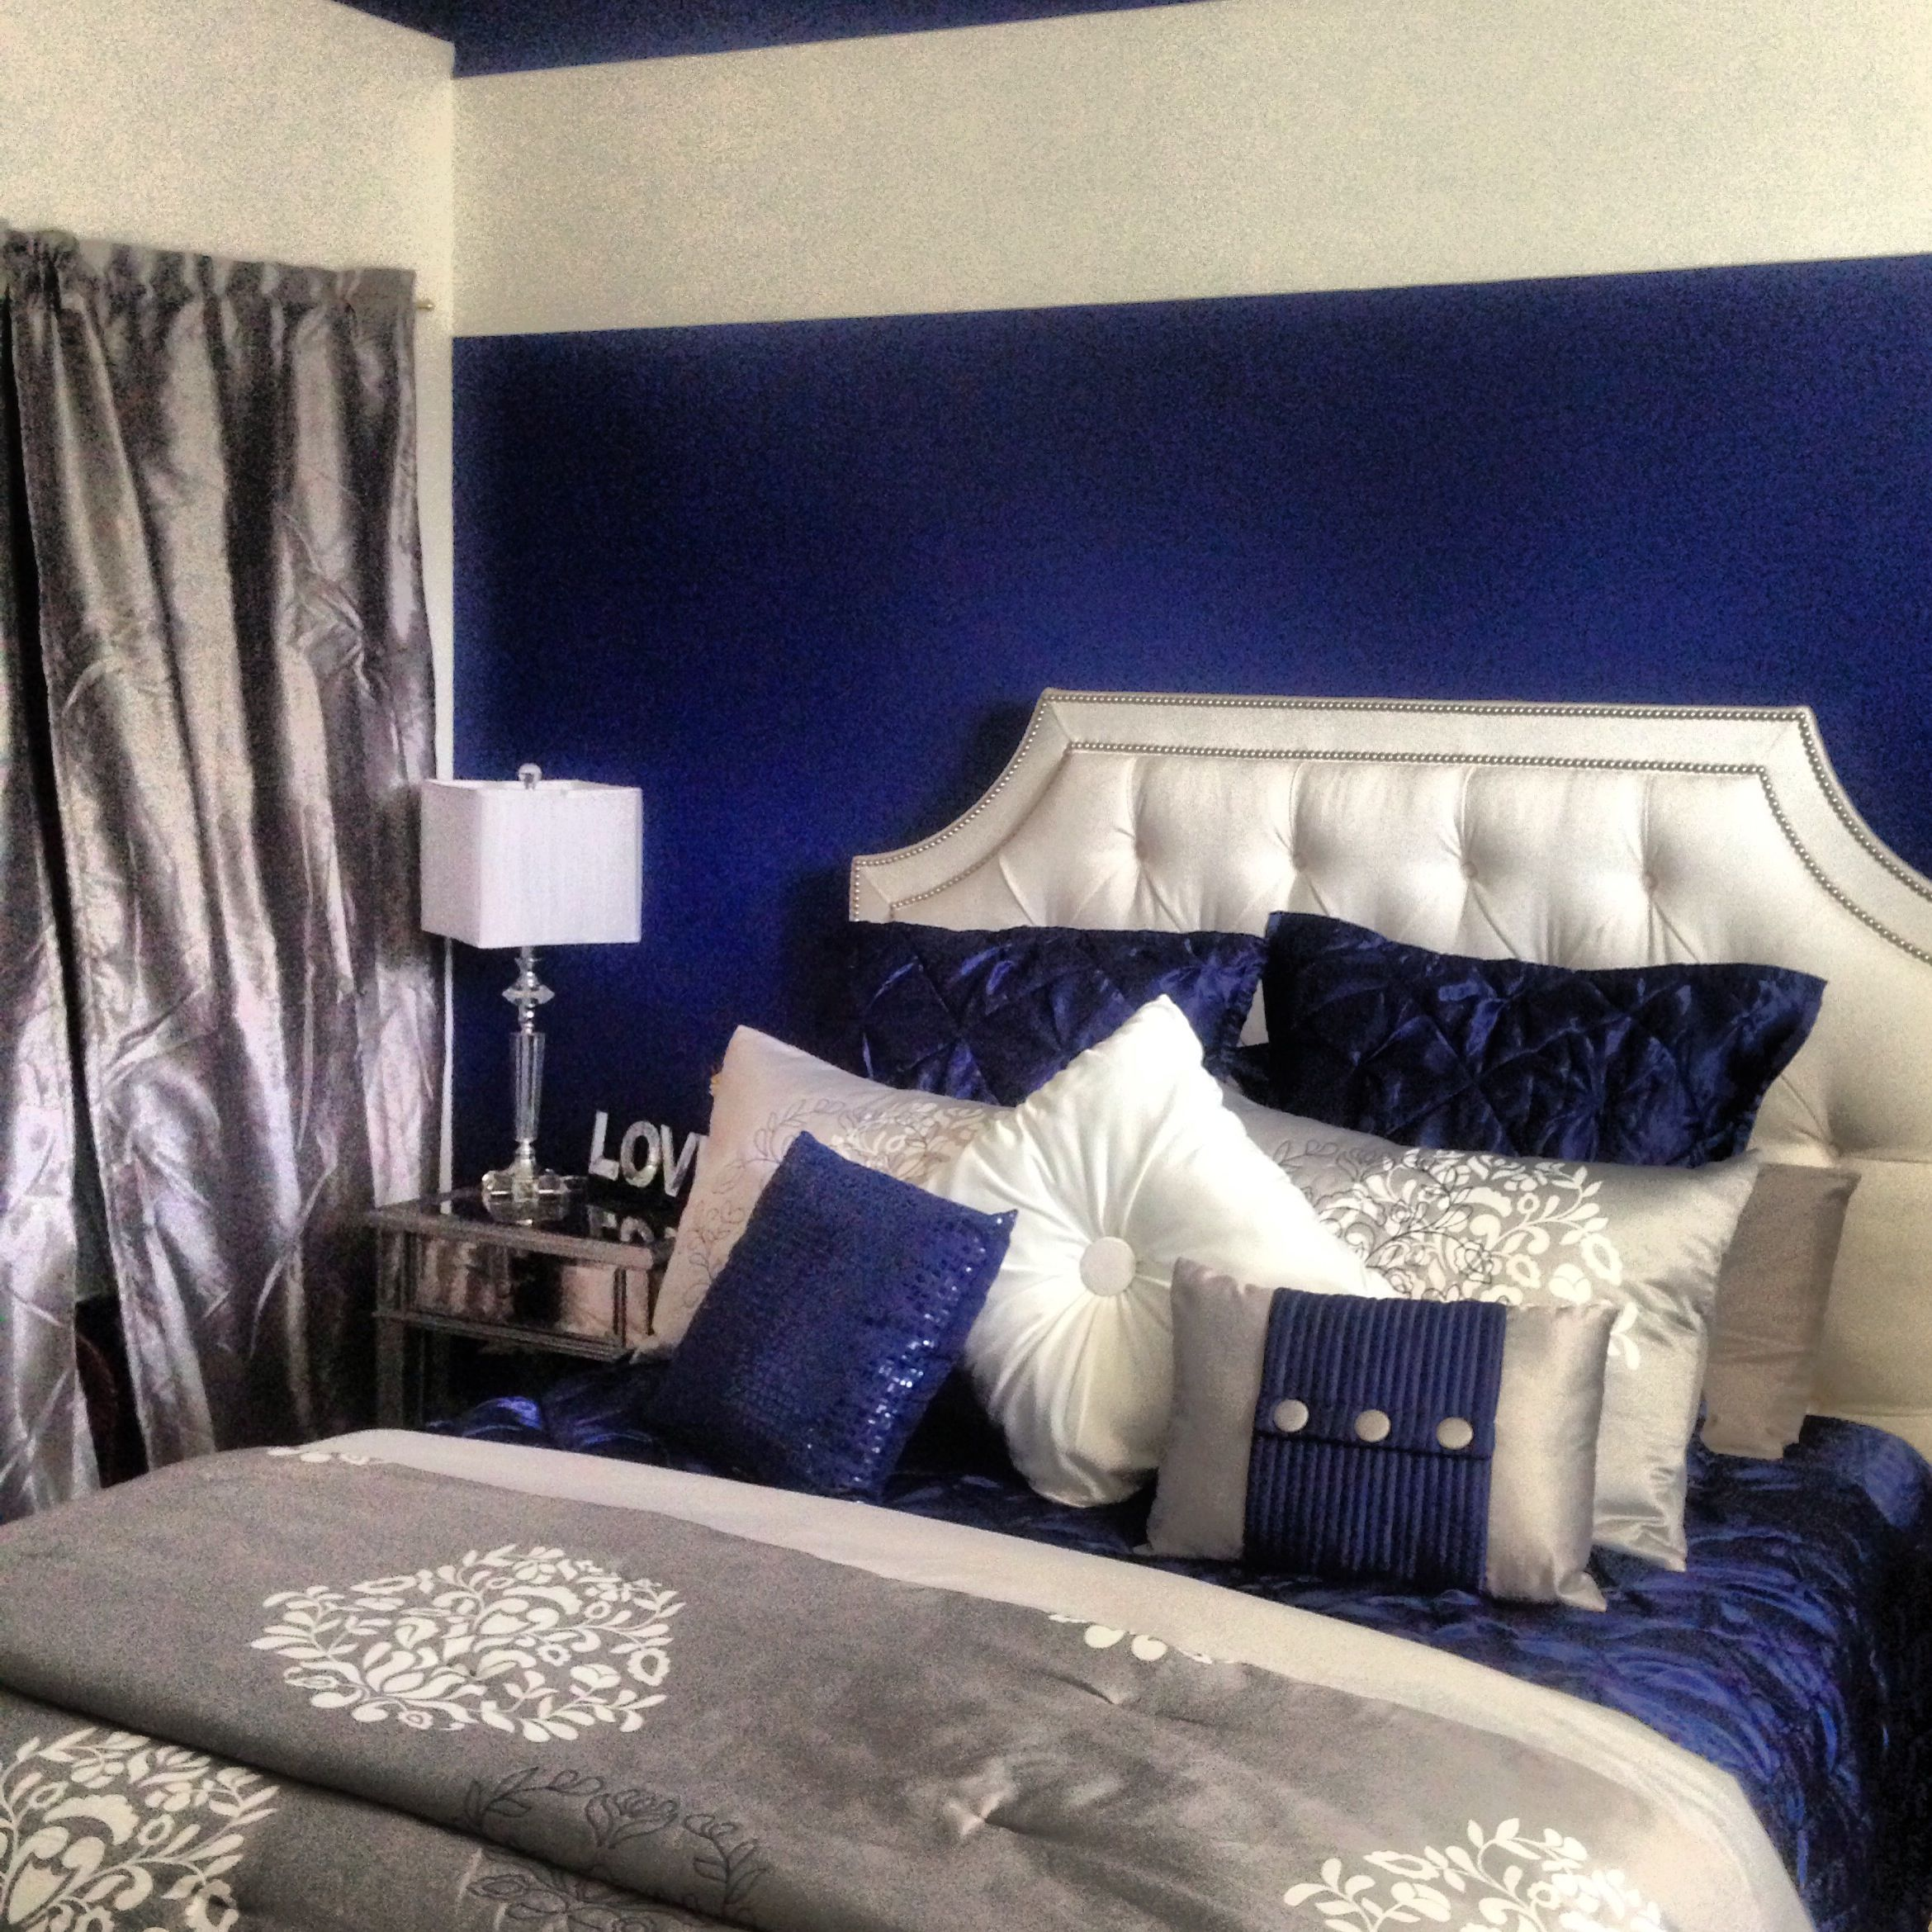 Royal Blue  silver  white   grey  I m completely obsessed   in love with MY  bedroom  Bed is custom made from Ethan Allen  bed set is entirely Daisy  Fuentes. Royal Blue  silver  white   grey  I m completely obsessed   in